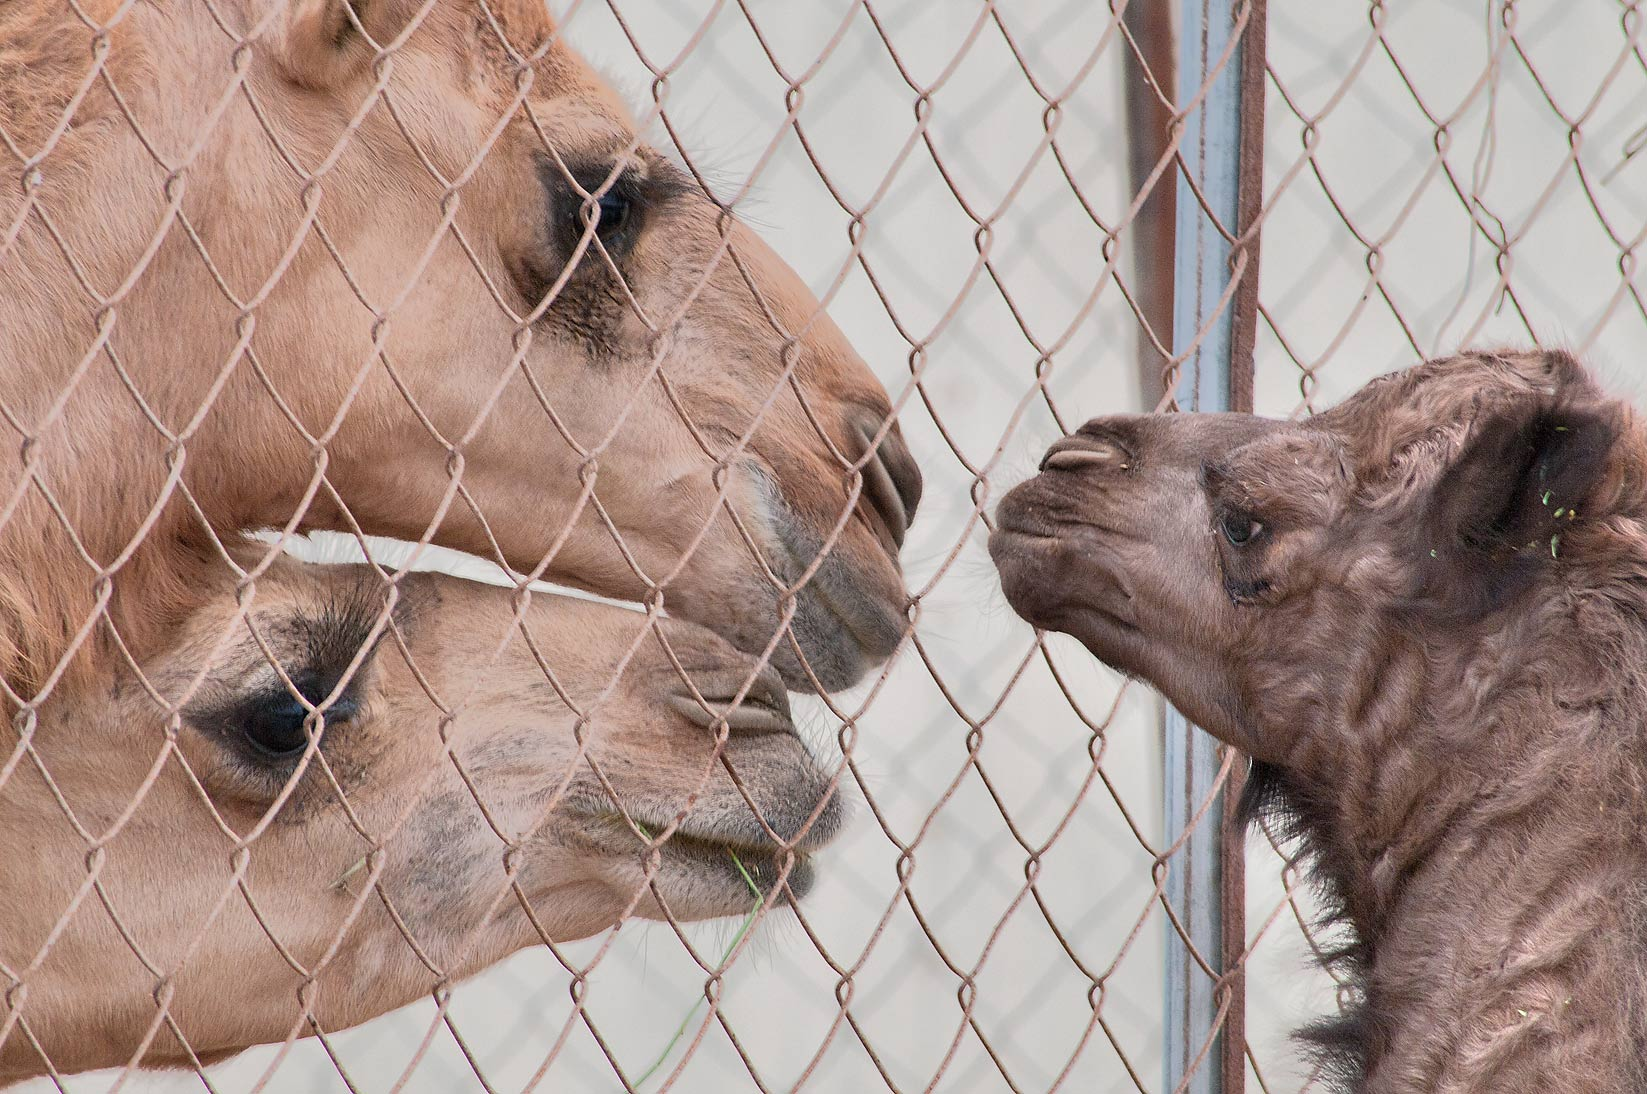 Calf meeting two camels through a fence in Camel...Wholesale Markets area. Doha, Qatar